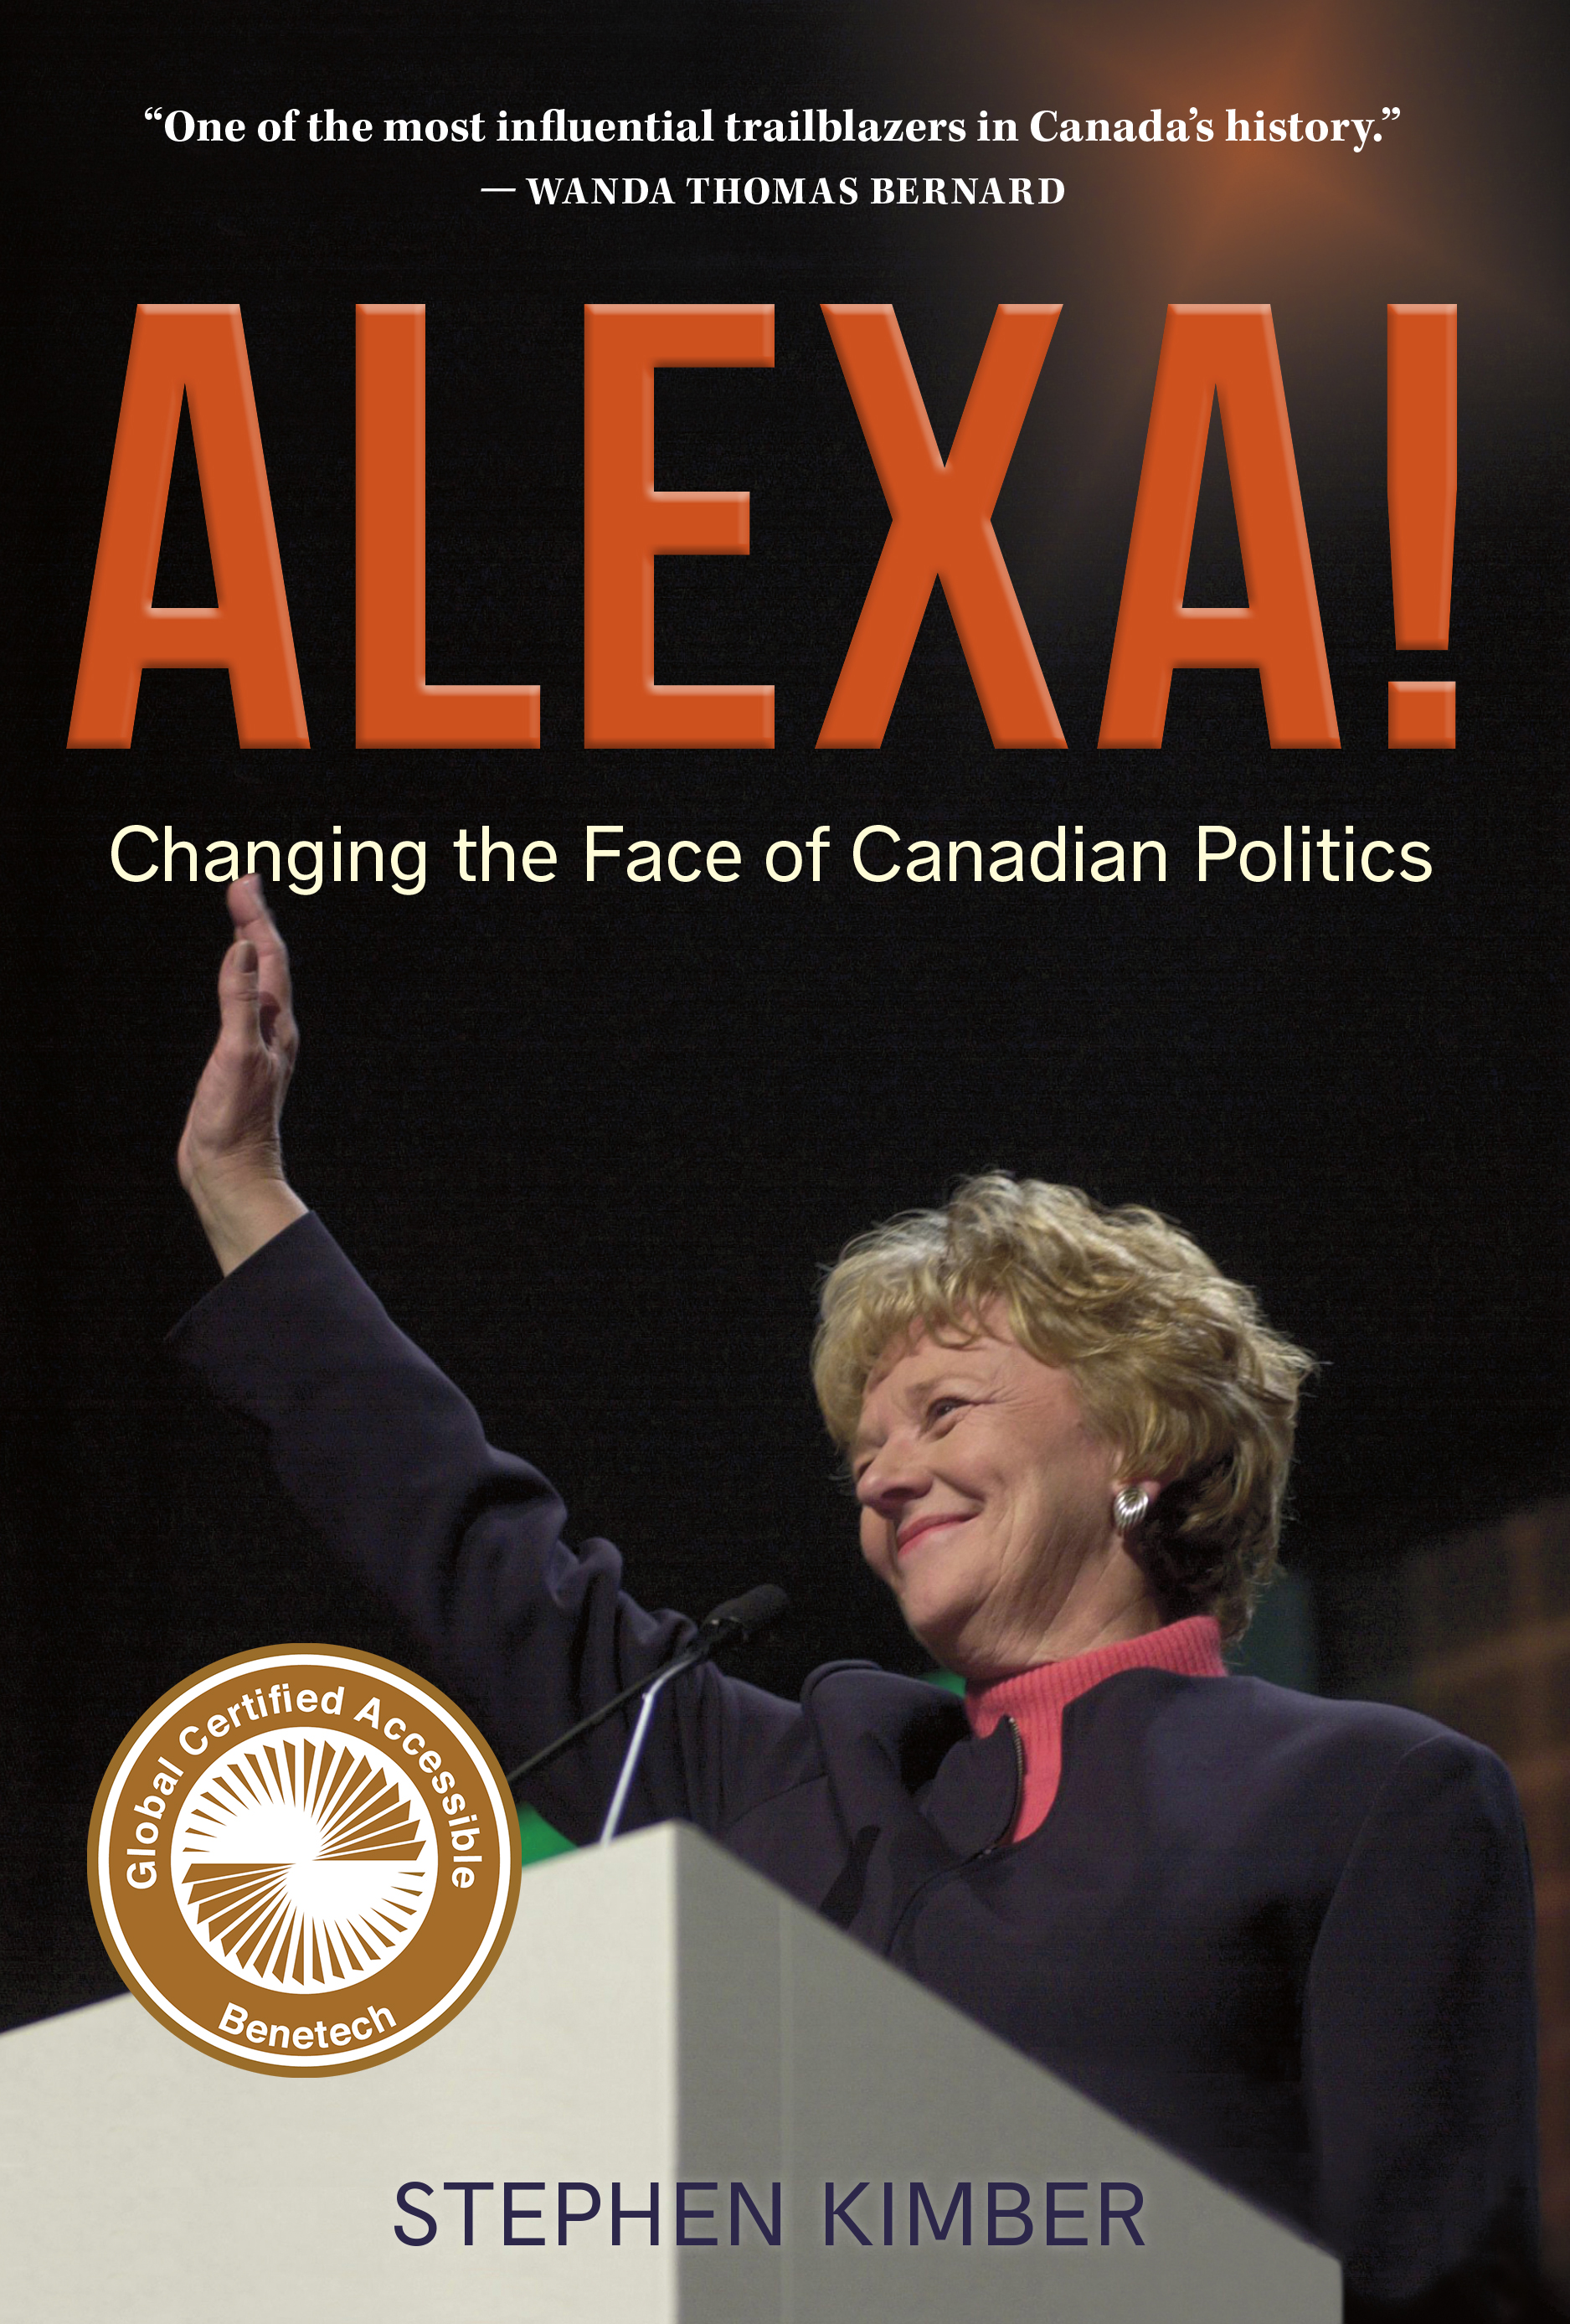 Alexa! Changing the Face of Canadian Politics